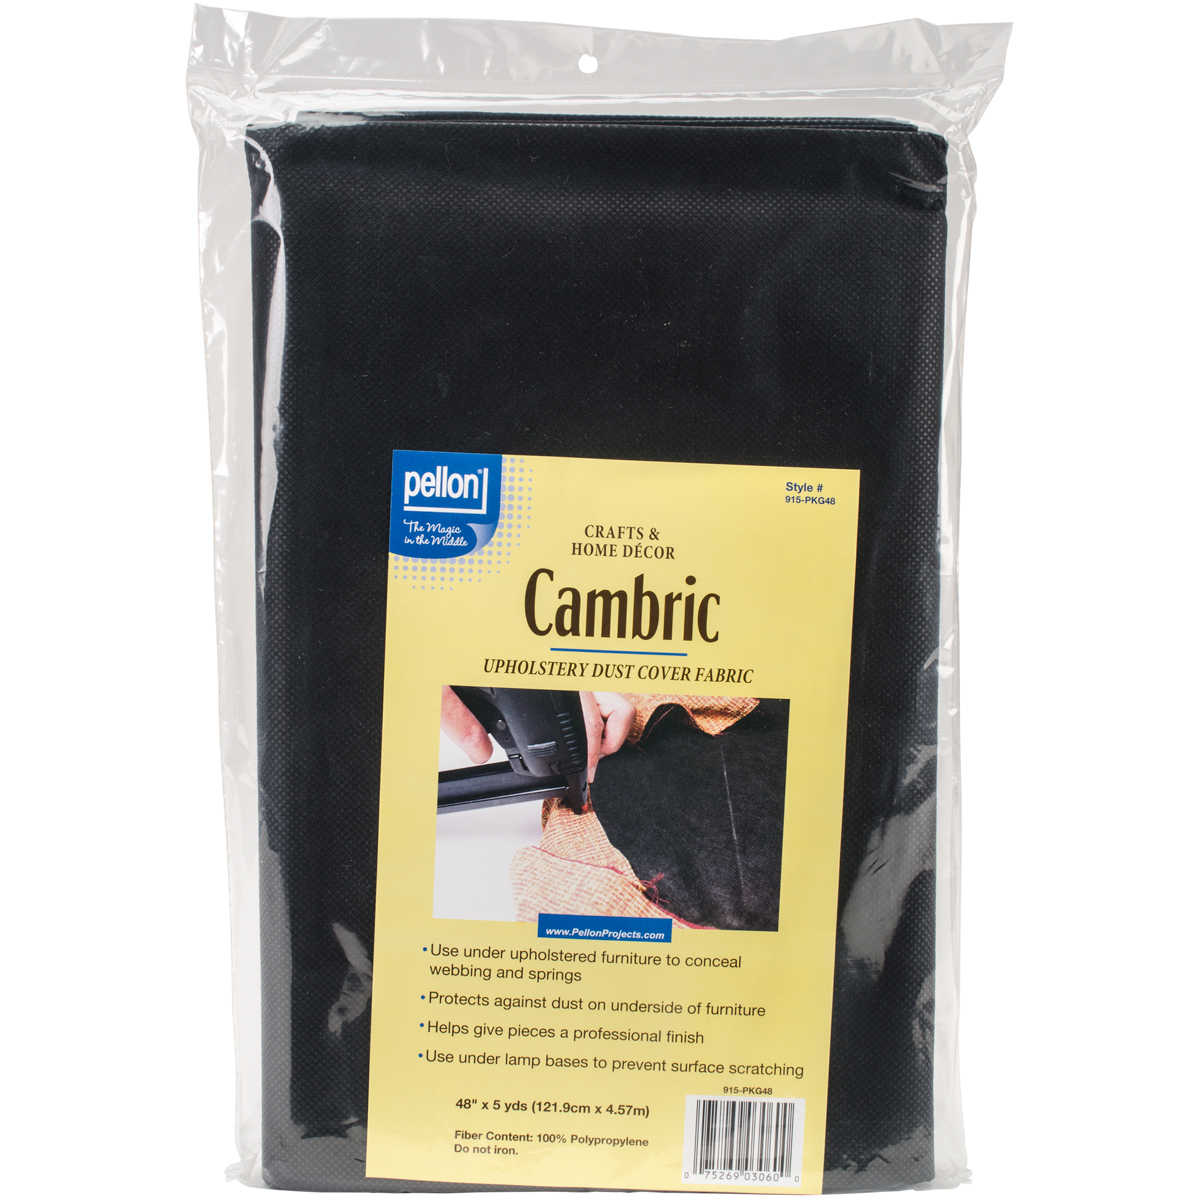 "Pellon Cambric Fabric For Upholstery 36""X5yd-Black"